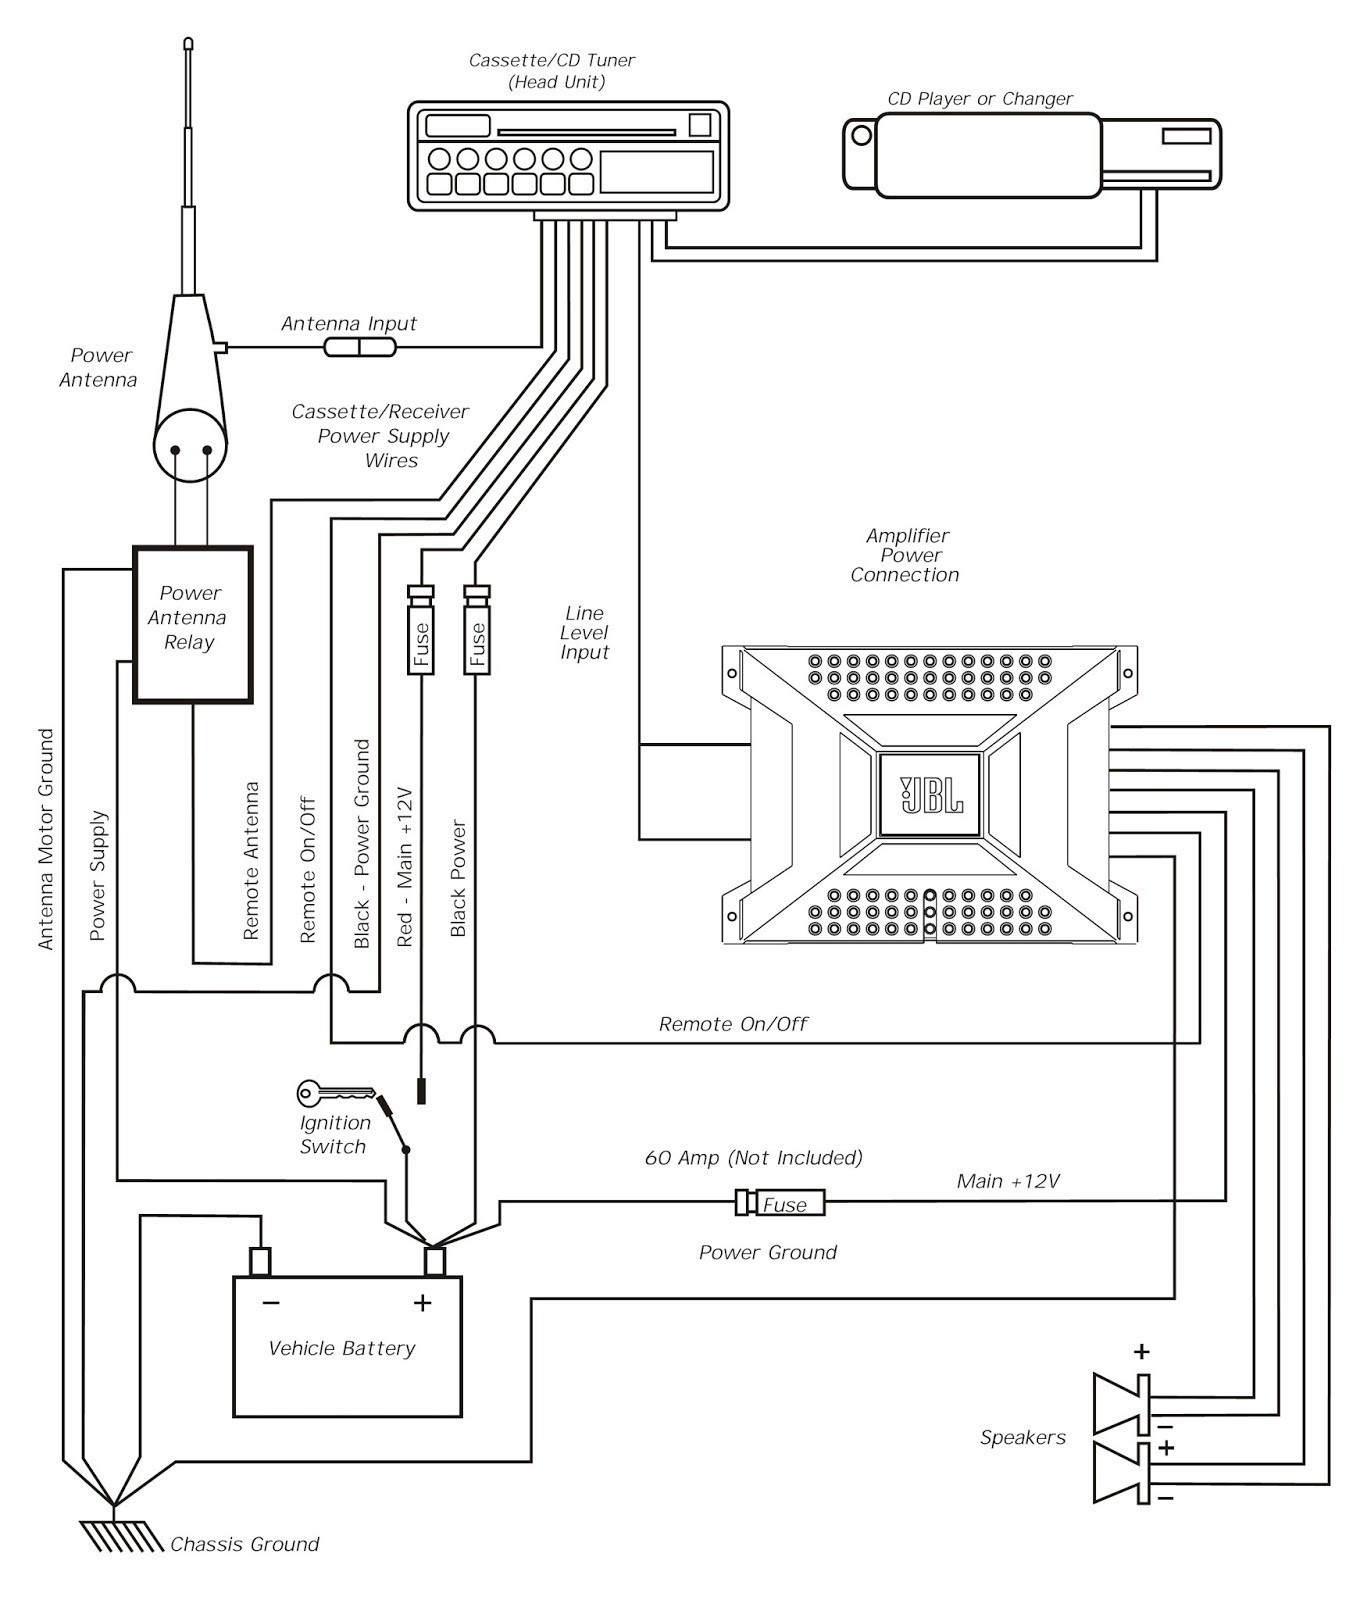 Mitsubishi Pajero Engine Diagram Mitsubishi Eclipse Stereo Wiring Diagram Shahsramblings Of Mitsubishi Pajero Engine Diagram